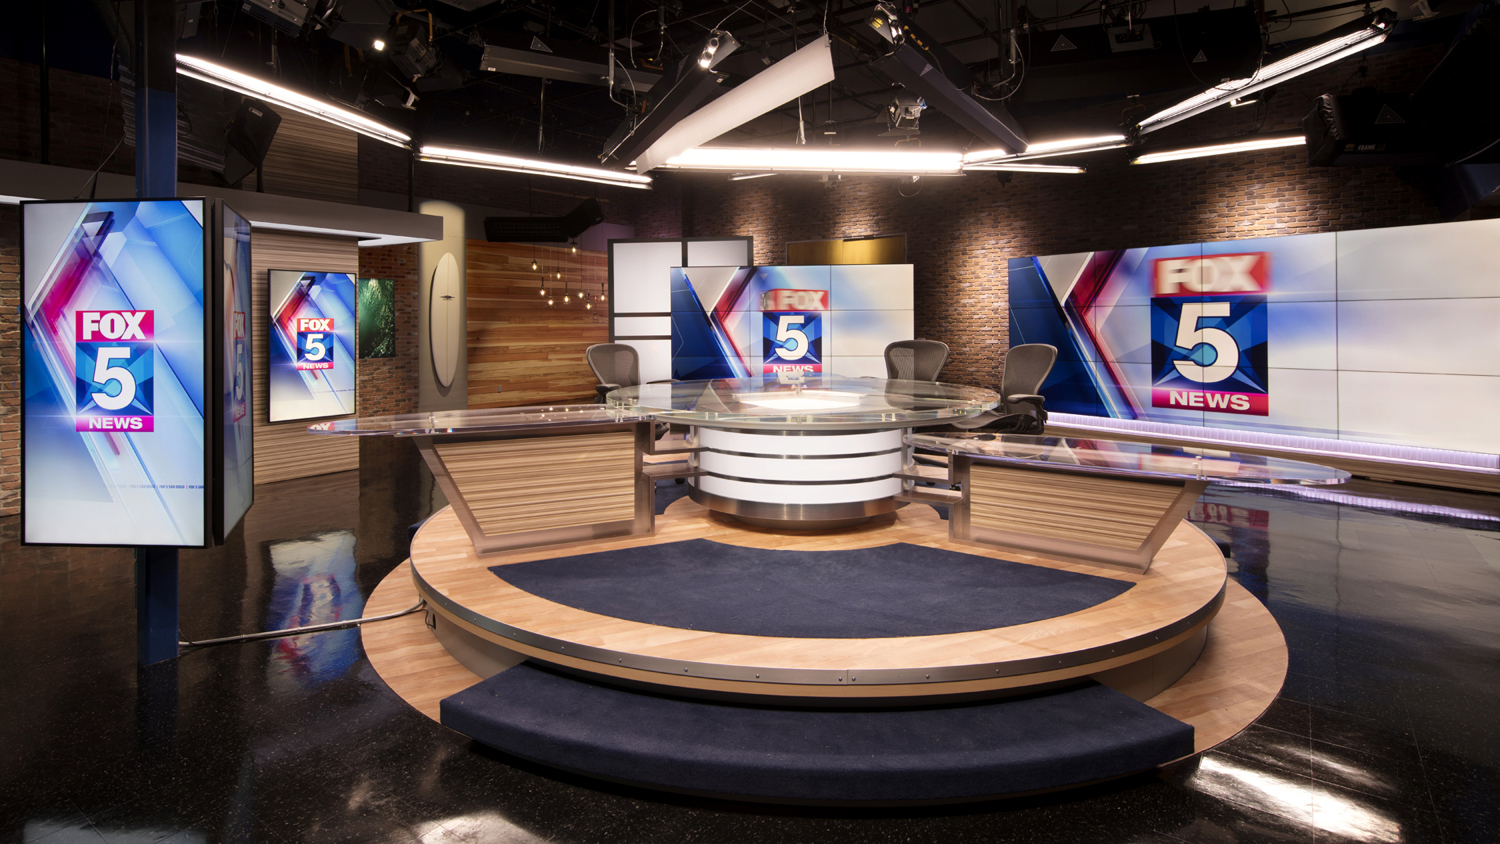 NCS_KSWB-Fox-5-San-Diego-TV-Studio_0002